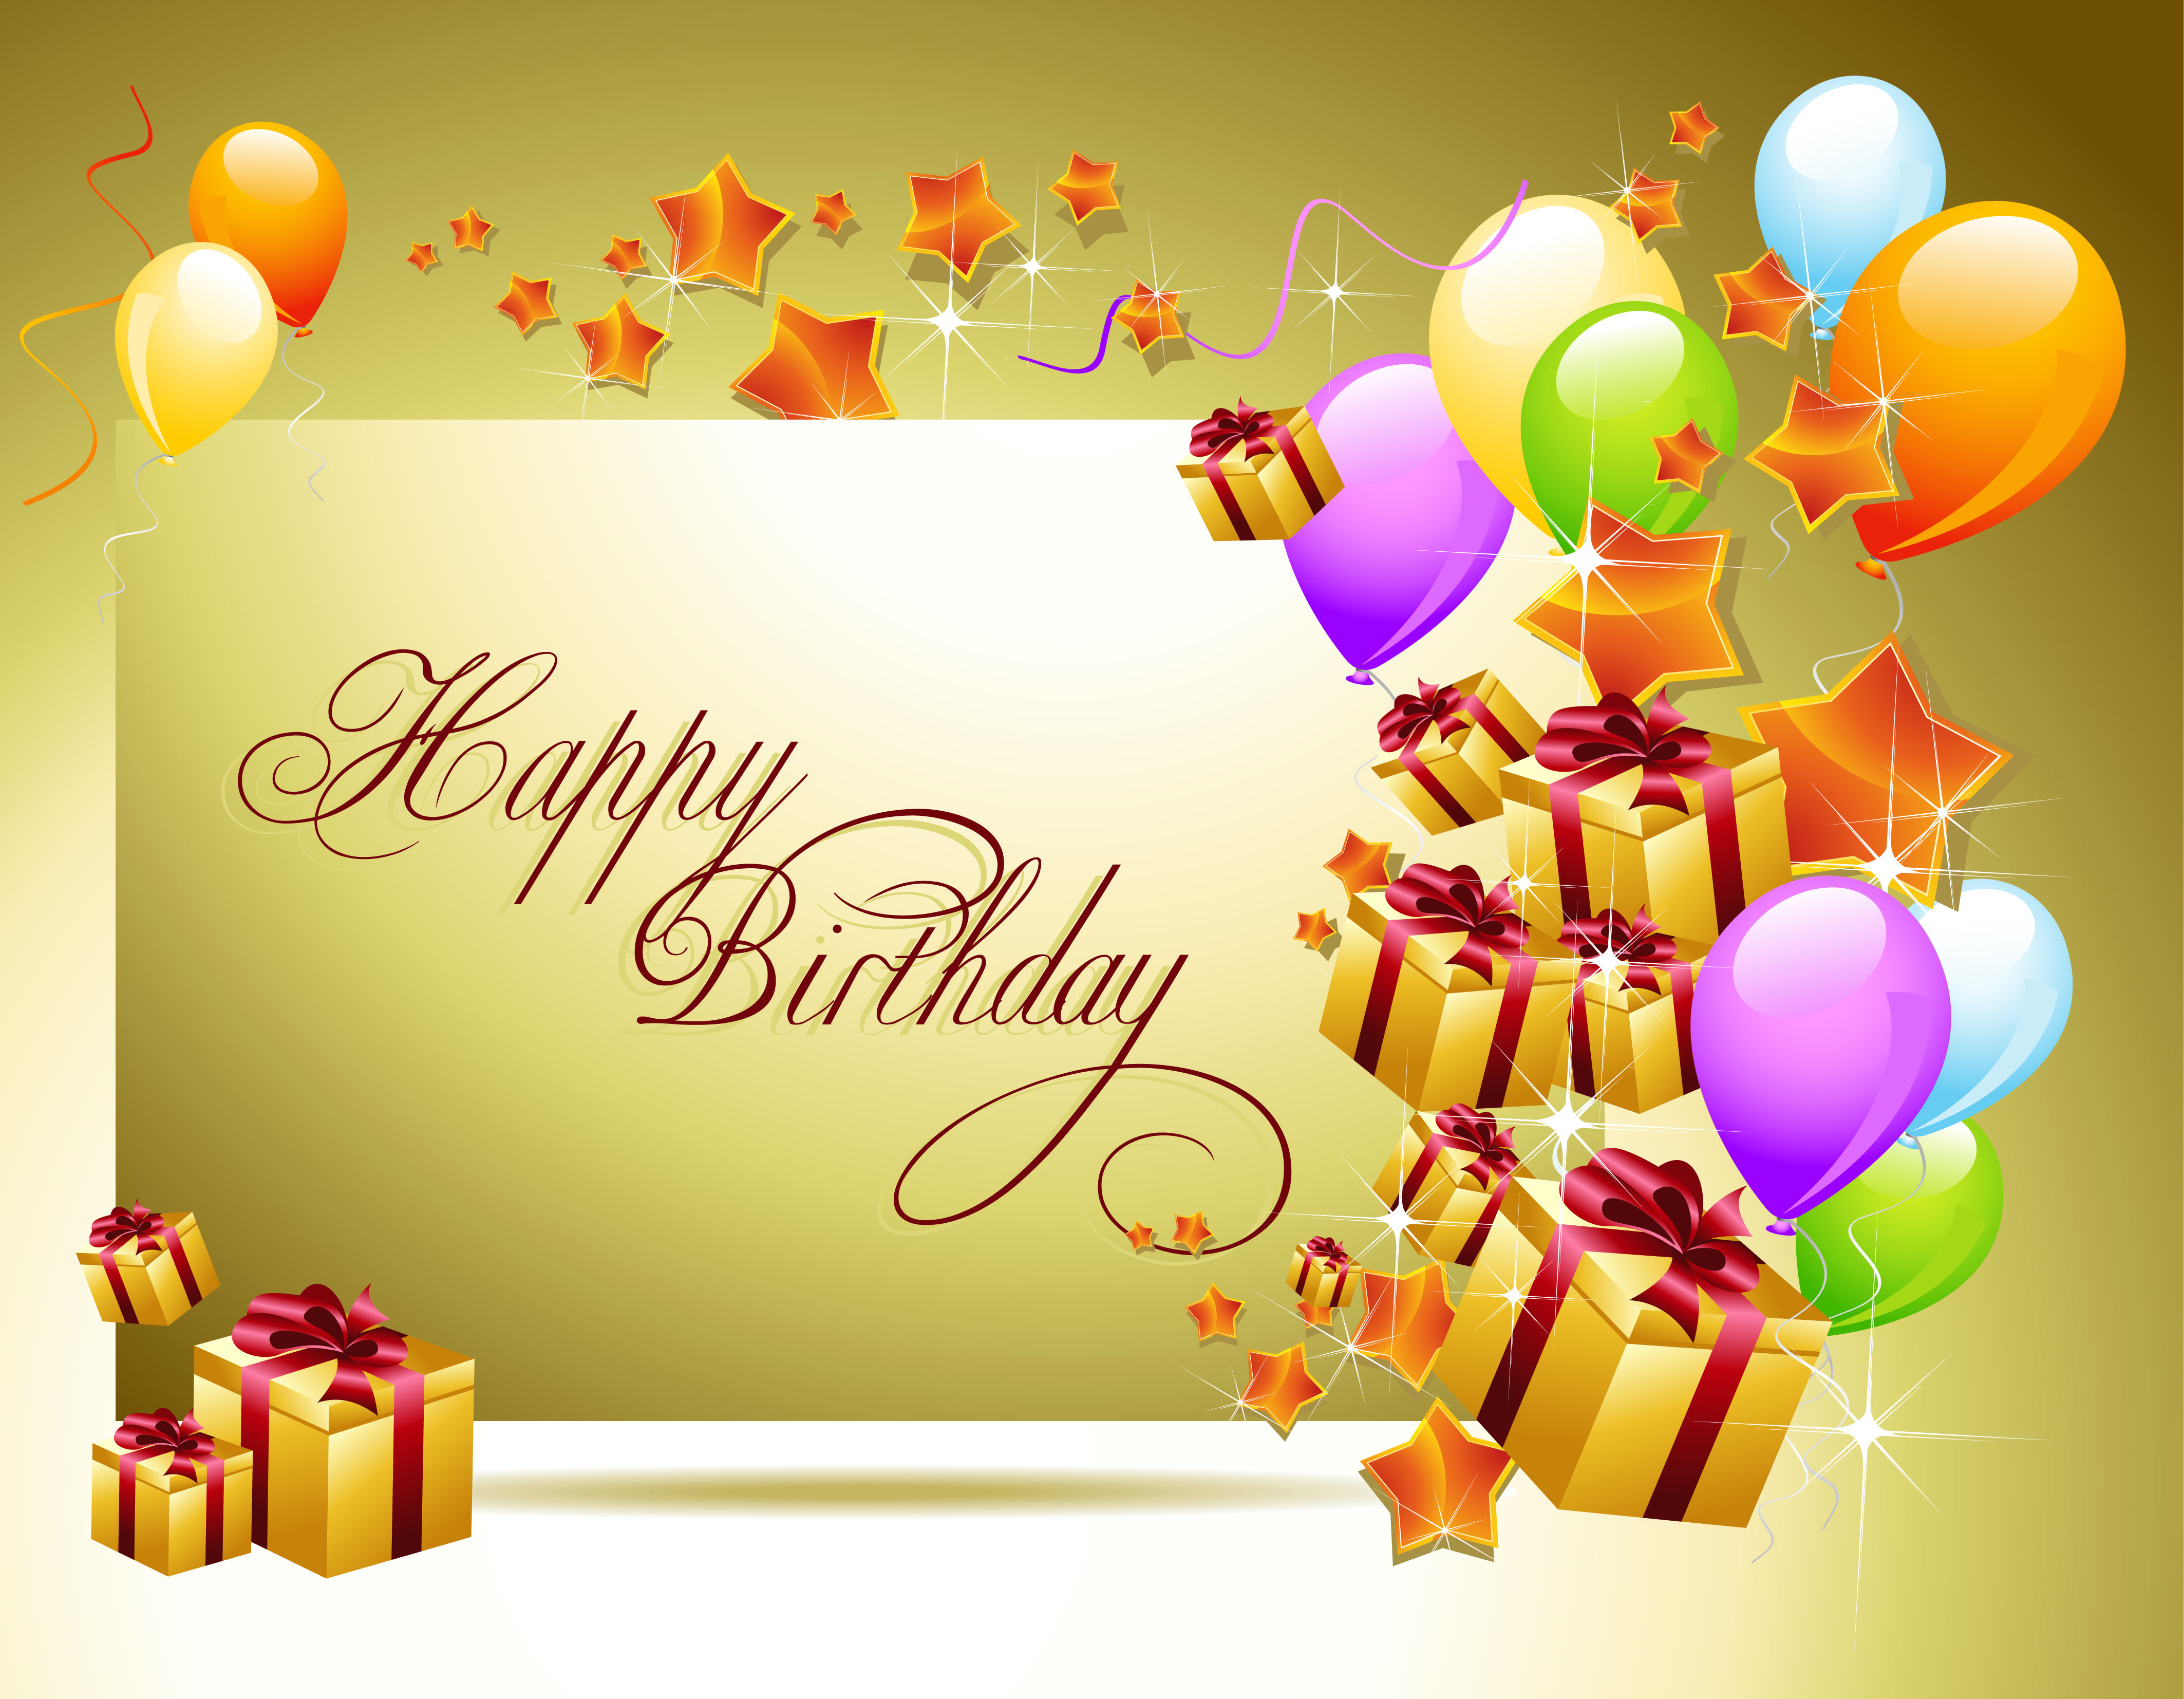 birthday background wallpaper ; Holidays___Birthday_Congratulations_on_the_birthday__golden_background_051789_